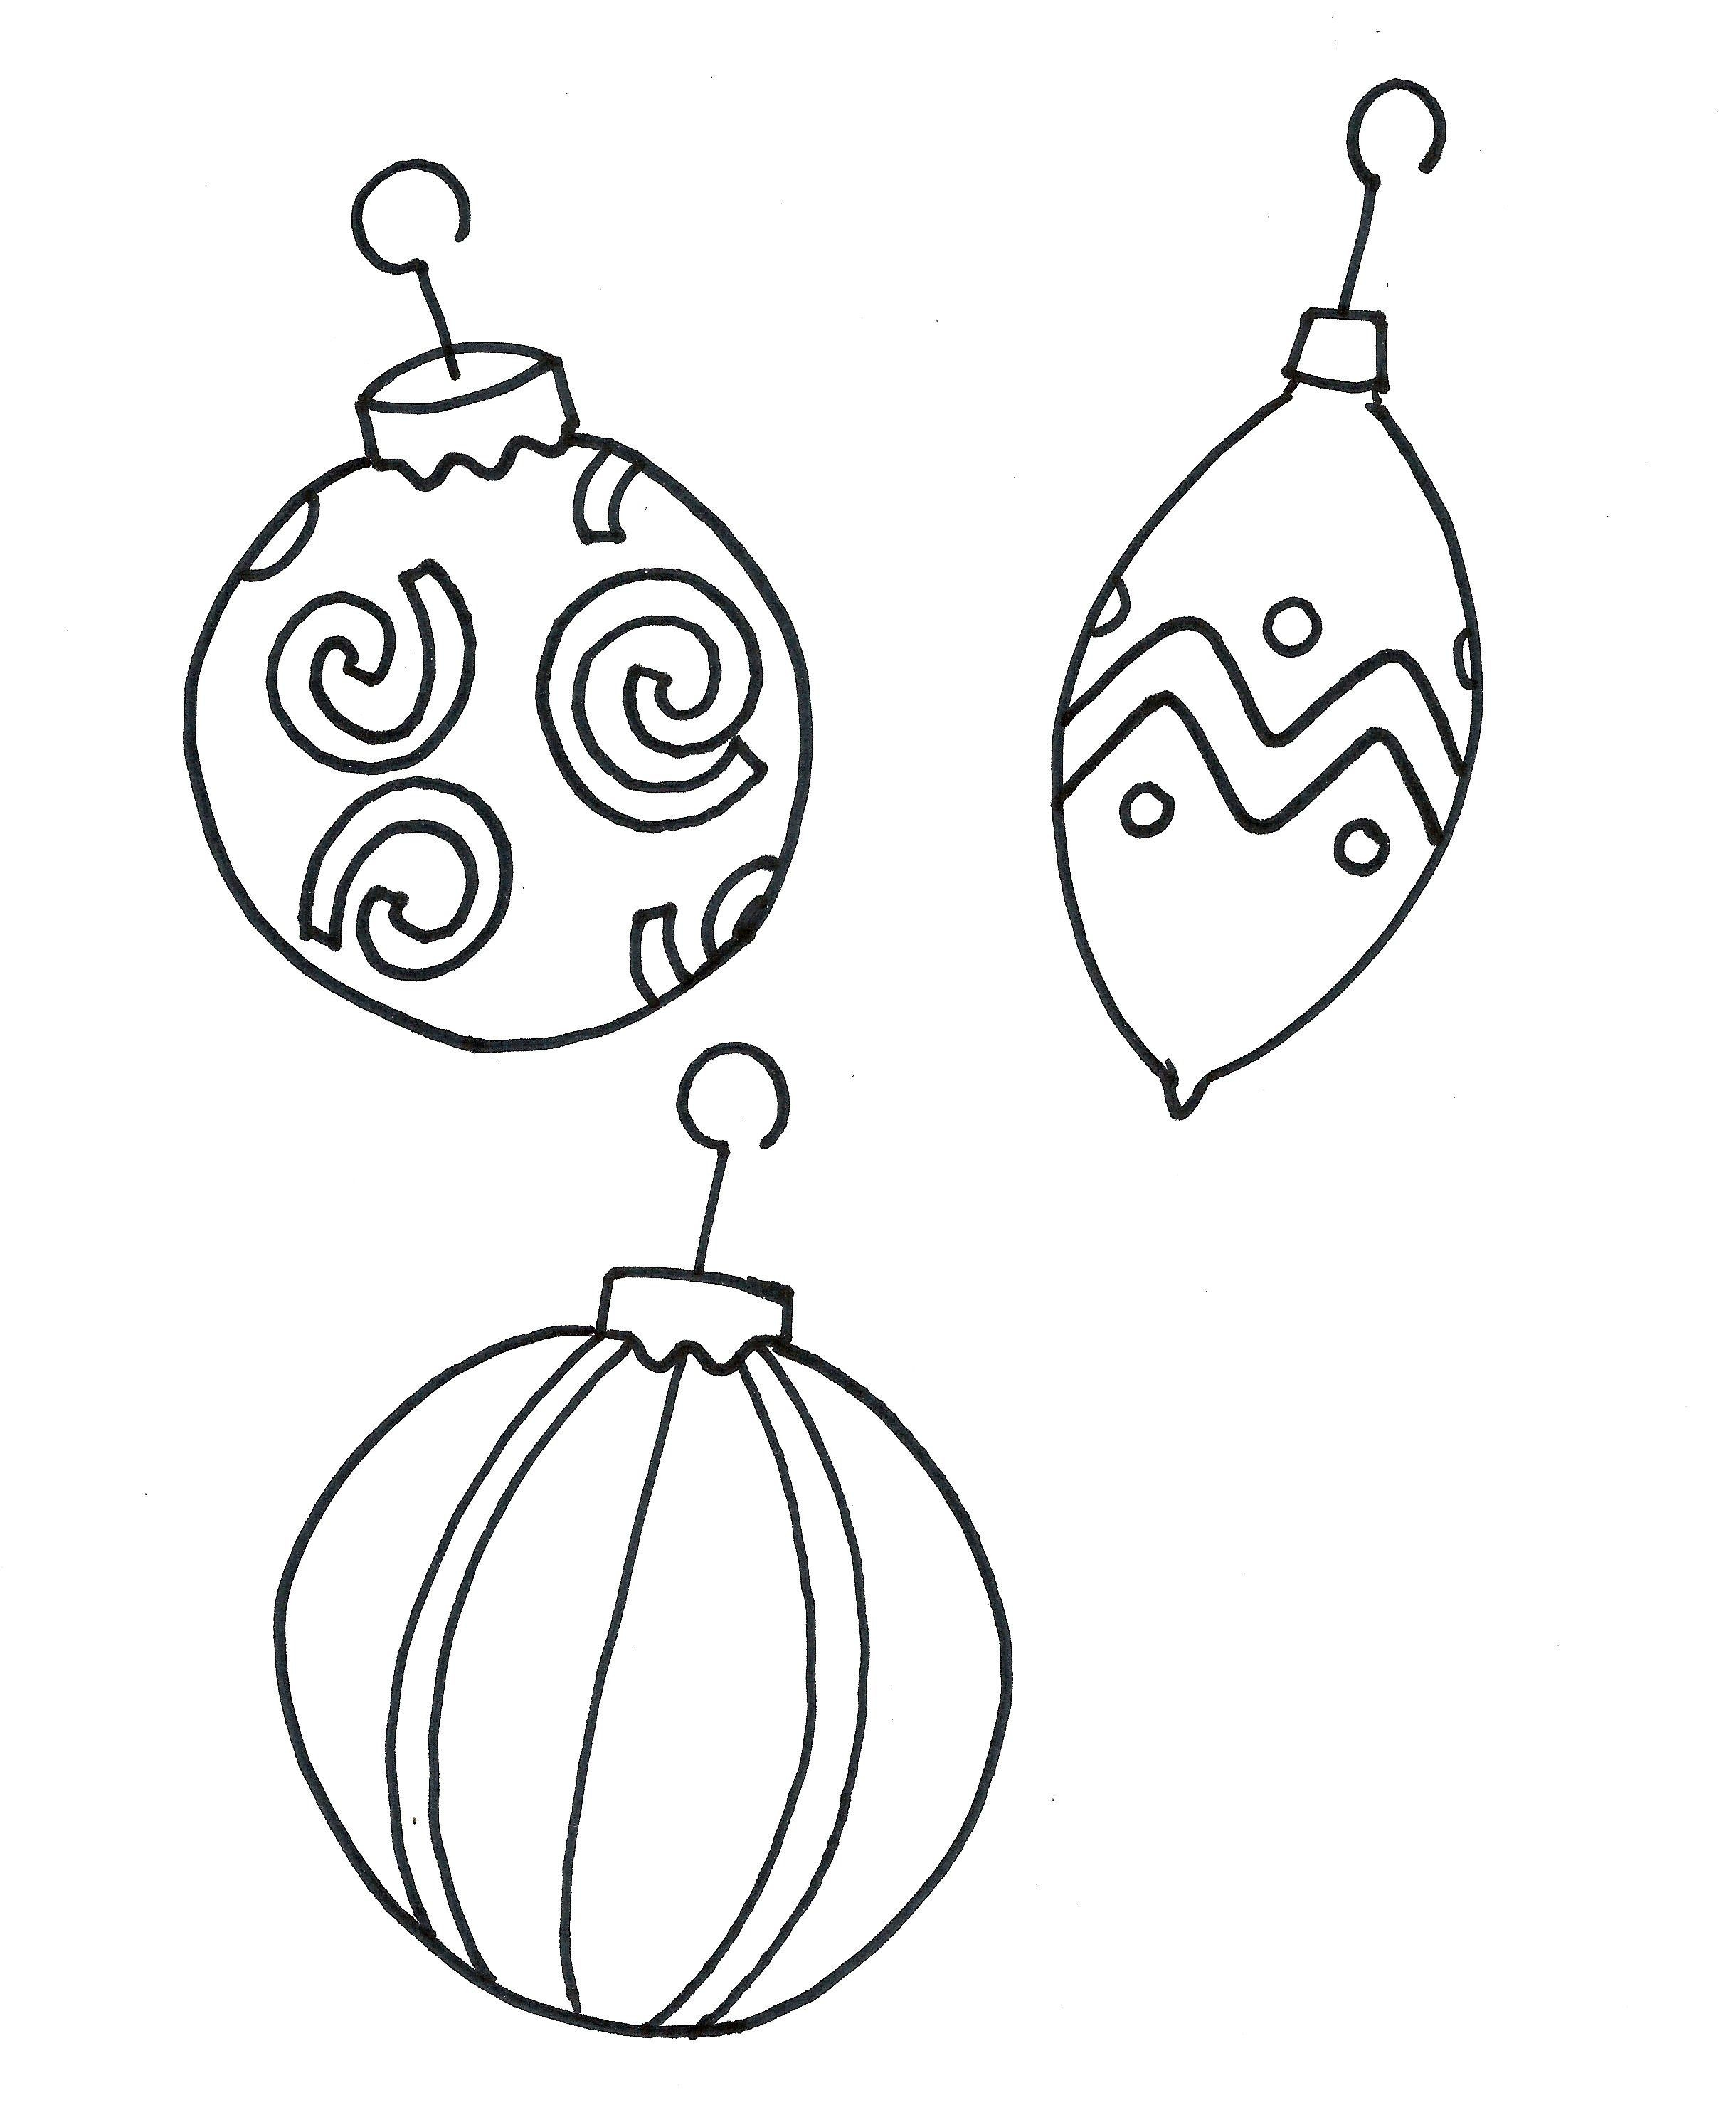 Christmas Coloring Sheets Printable Tag: 32 Remarkable Ornament - Free Printable Christmas Tree Ornaments Coloring Pages